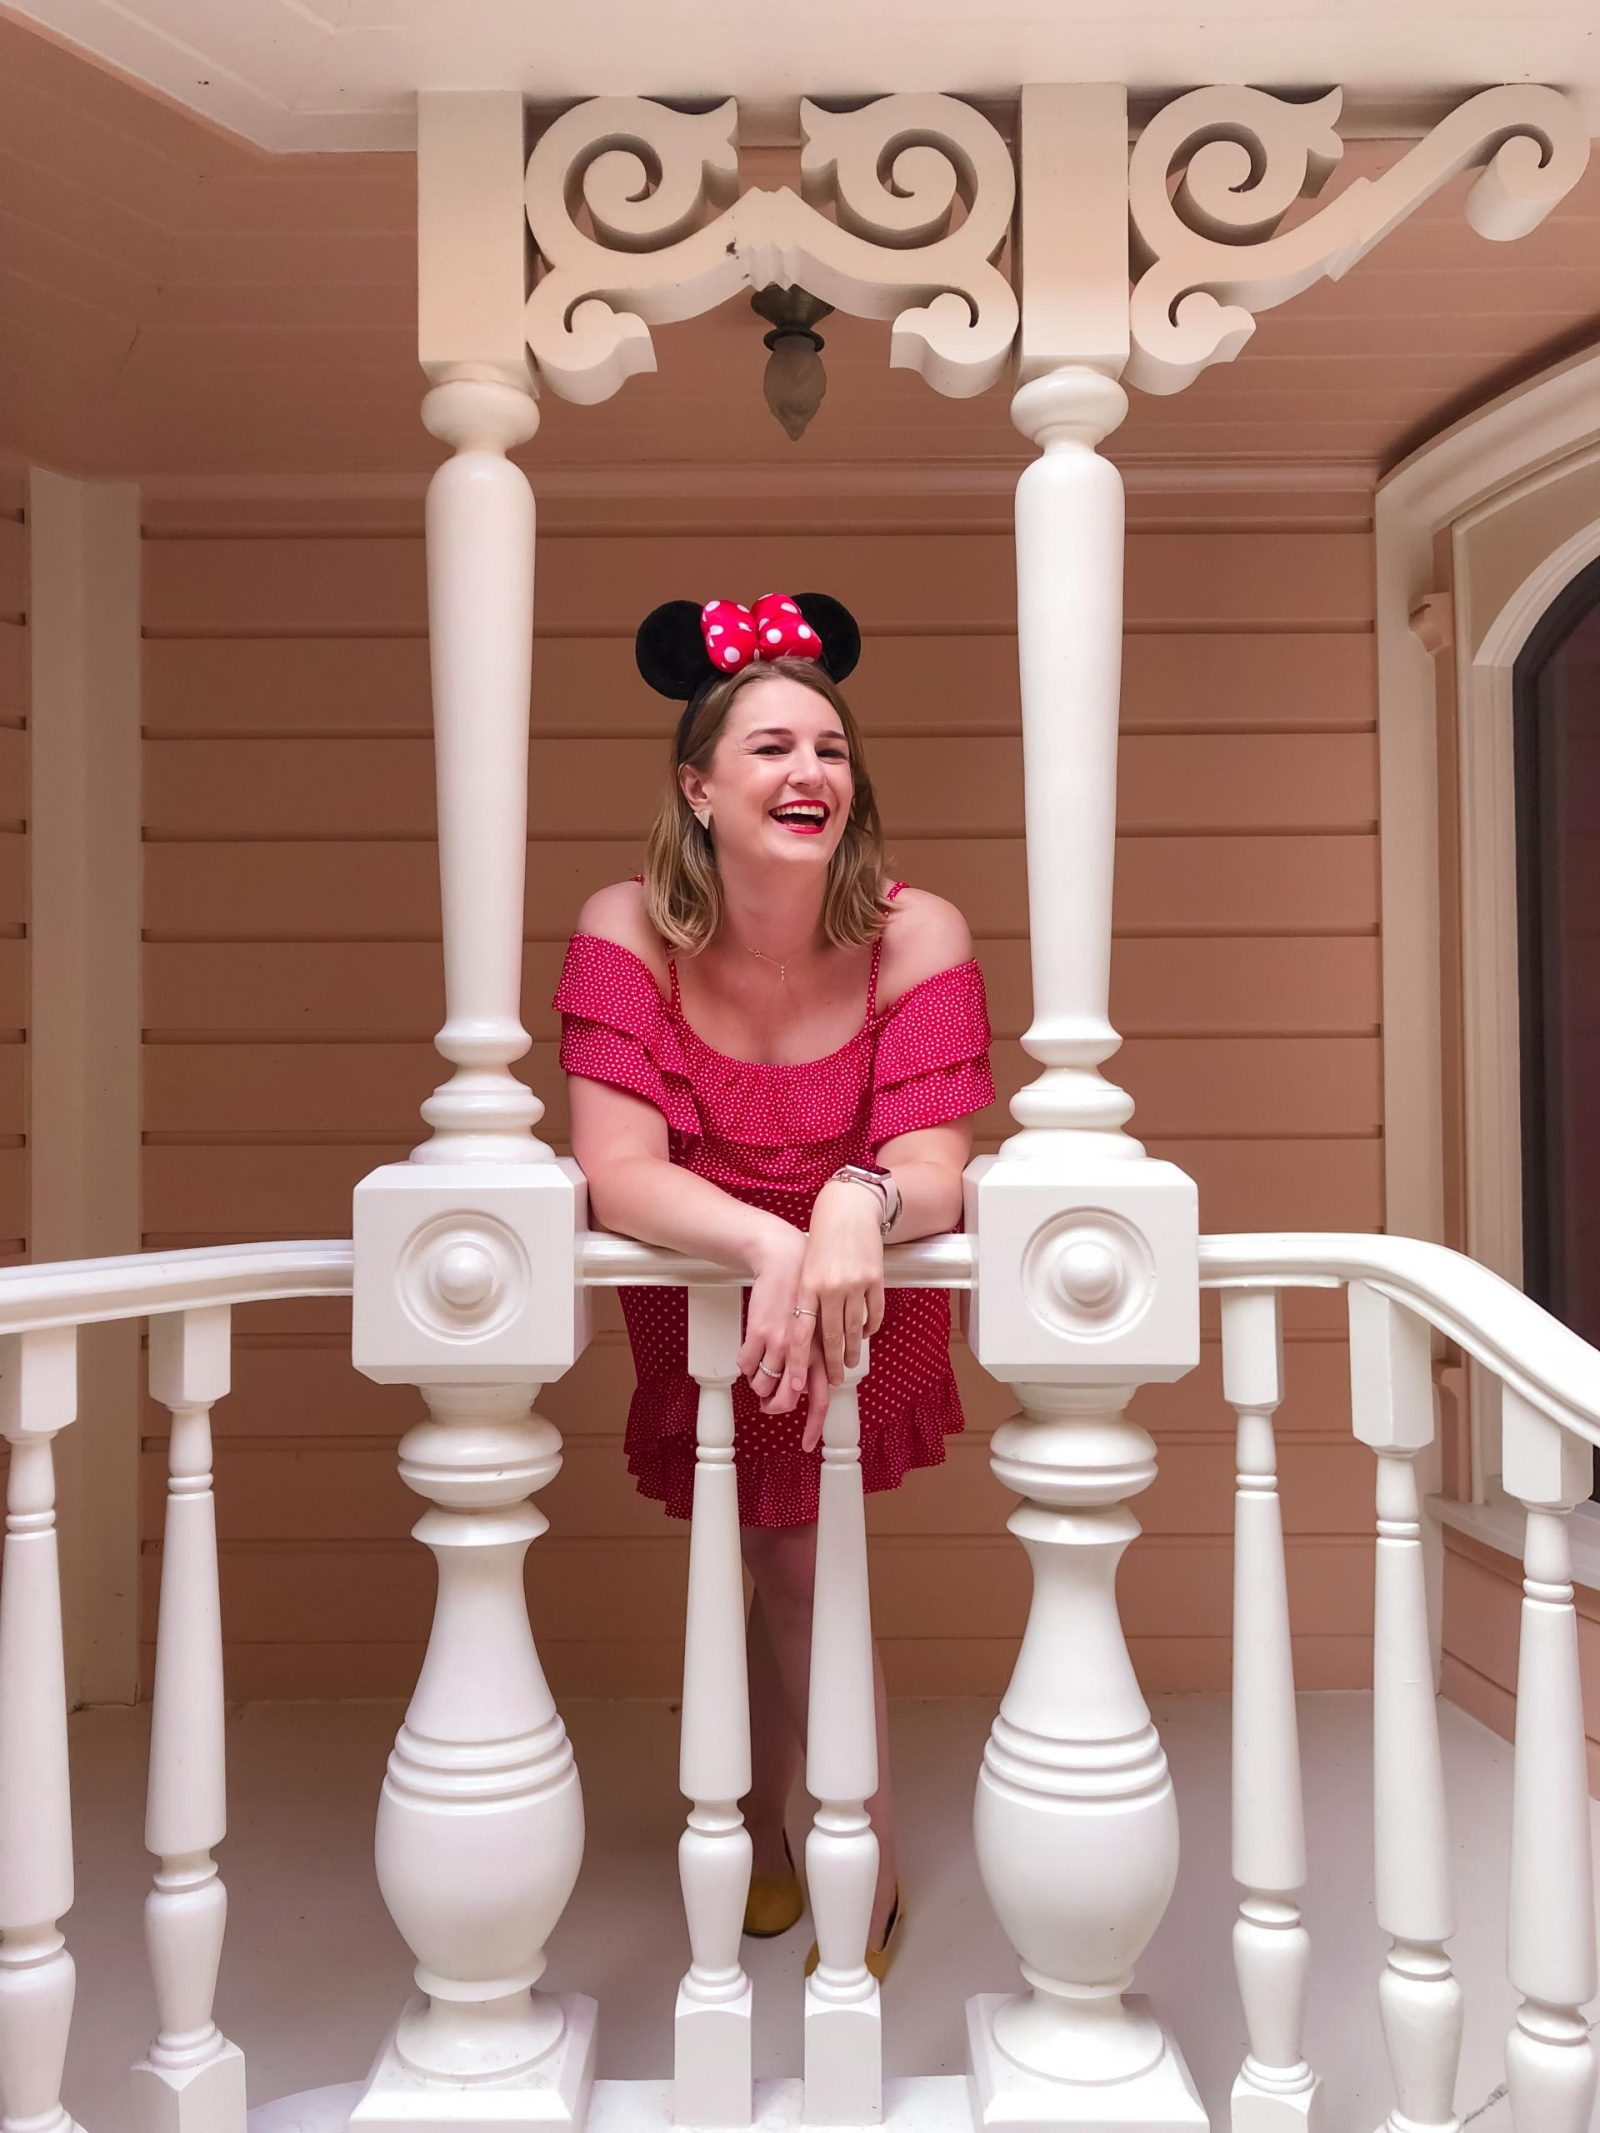 The Pink Porch - one of the most Instagrammable spots at Disneyland Paris